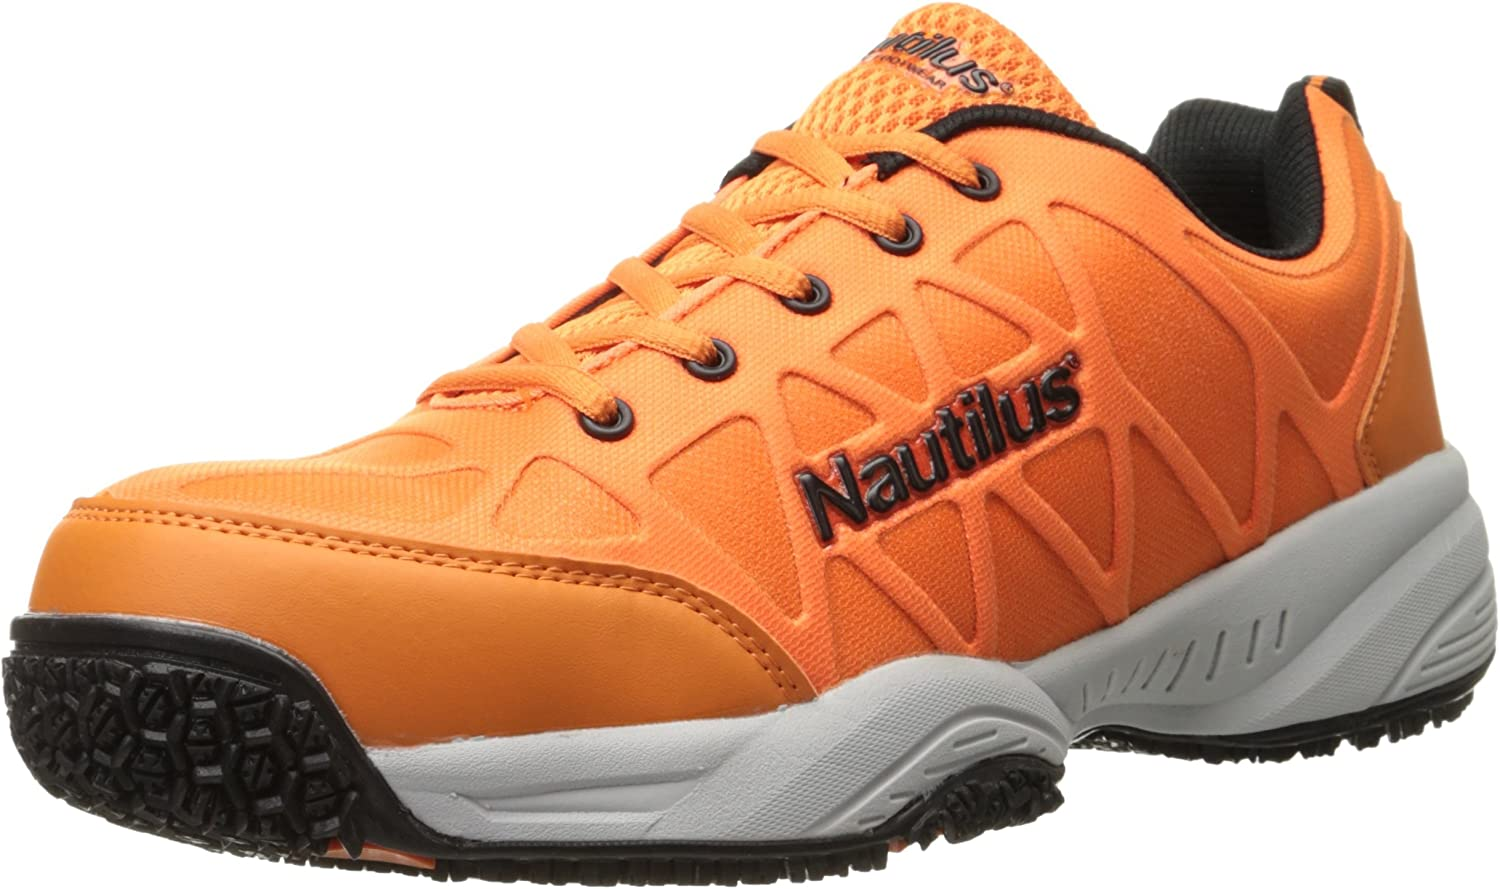 Nautilus 2116 Comp Toe Light Weight Slip Resistant Athletic shoes